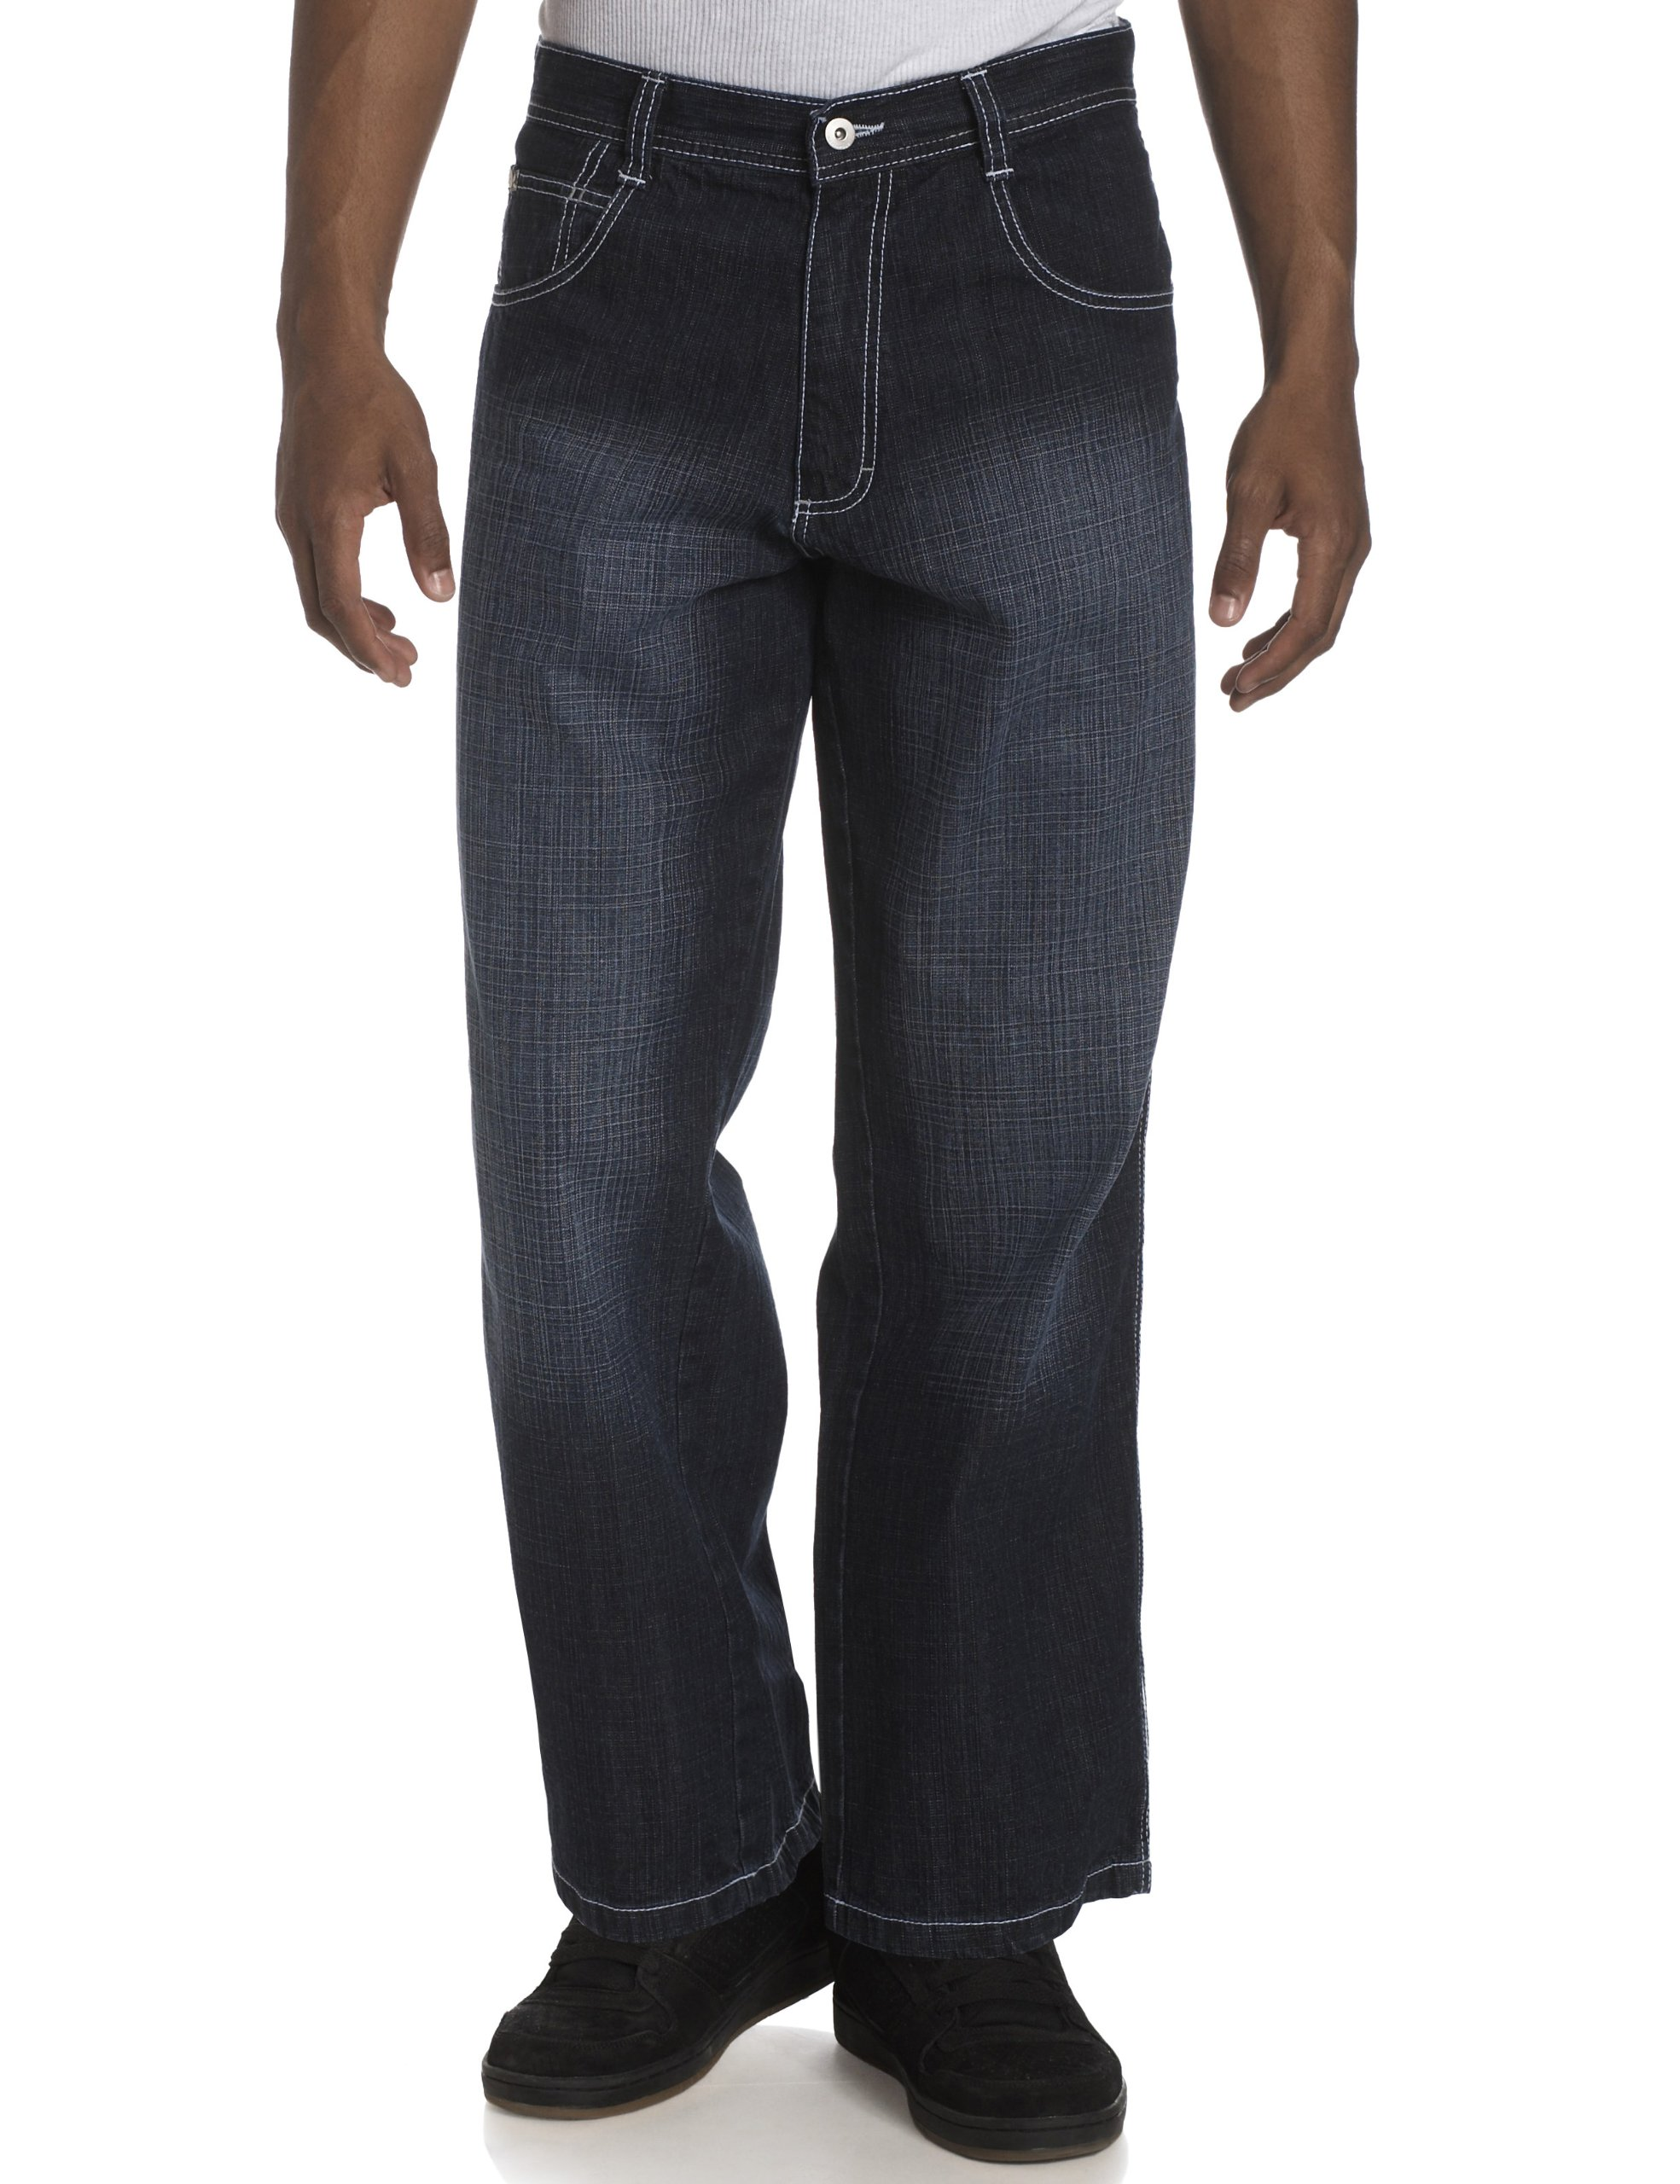 Southpole Men's Relaxed Fit Core Denim, Dark Sand Blue, 38x34